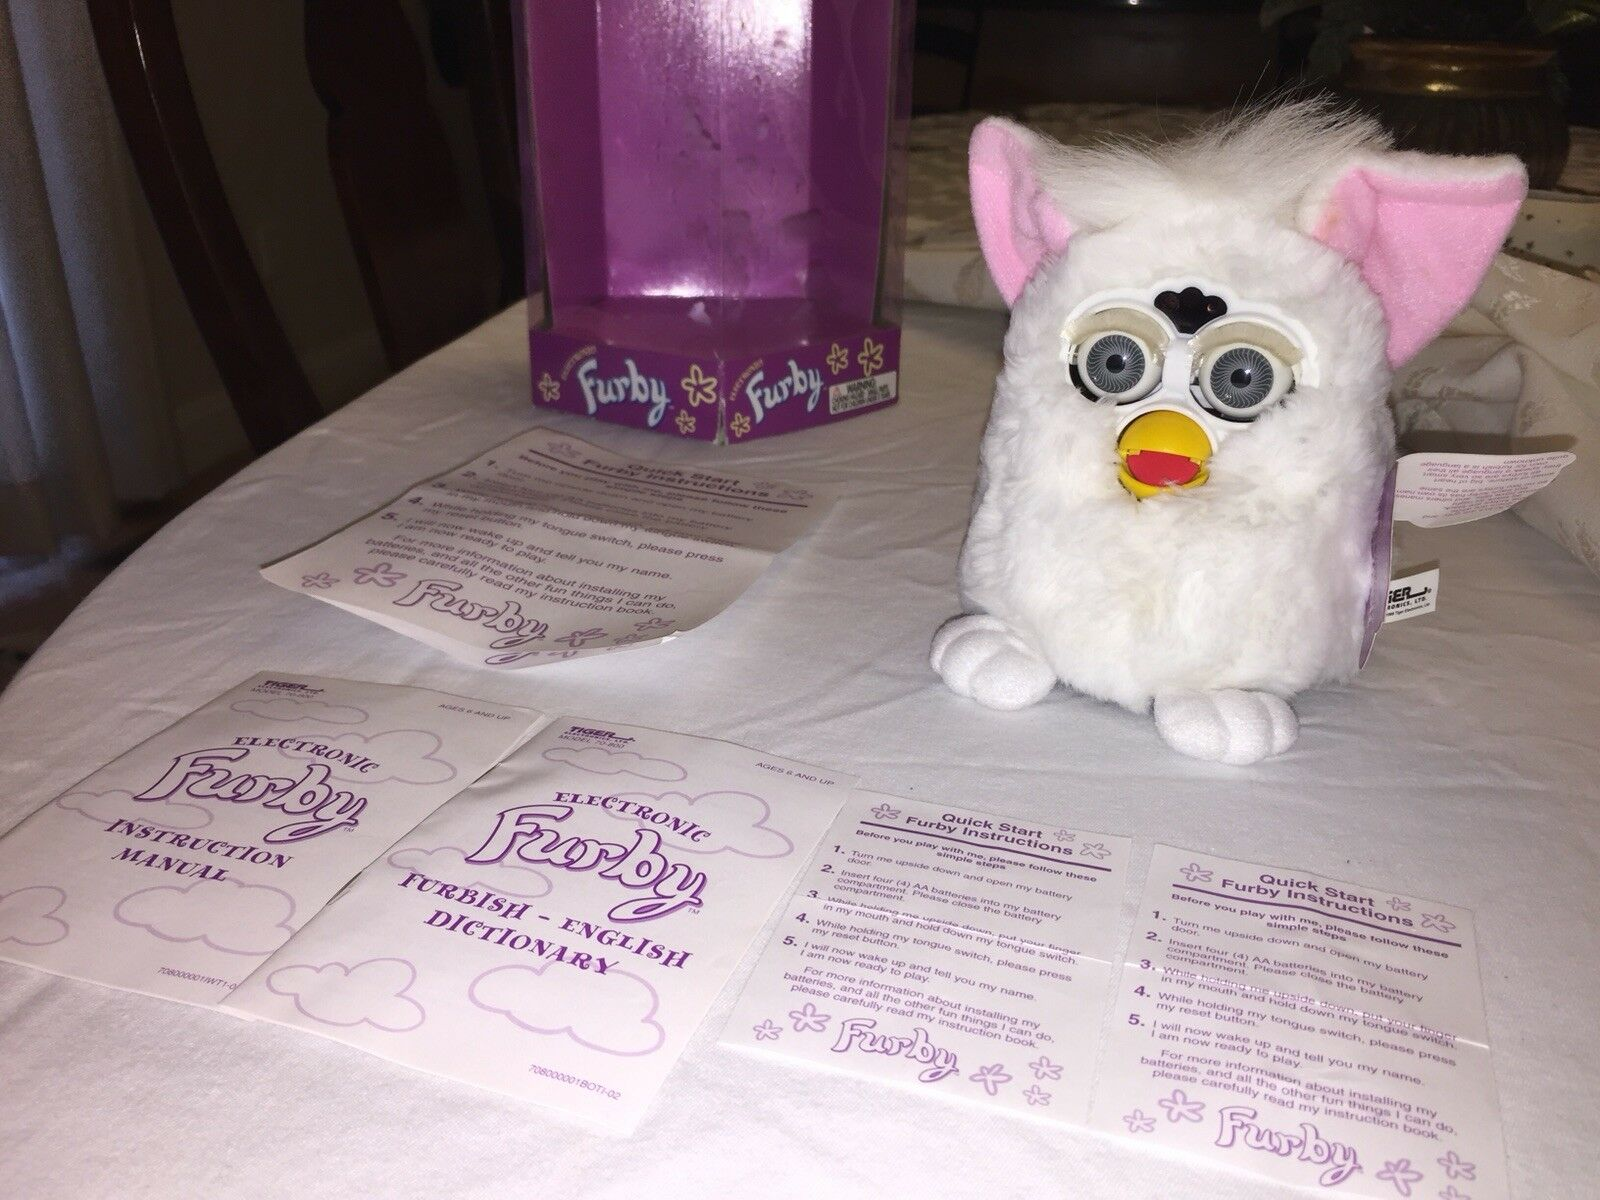 TIGER ELECTRONICS 1998 Edition Orig FURBY Model 70-800 IN ORIGINAL ORIGINAL ORIGINAL BOX 7b9897